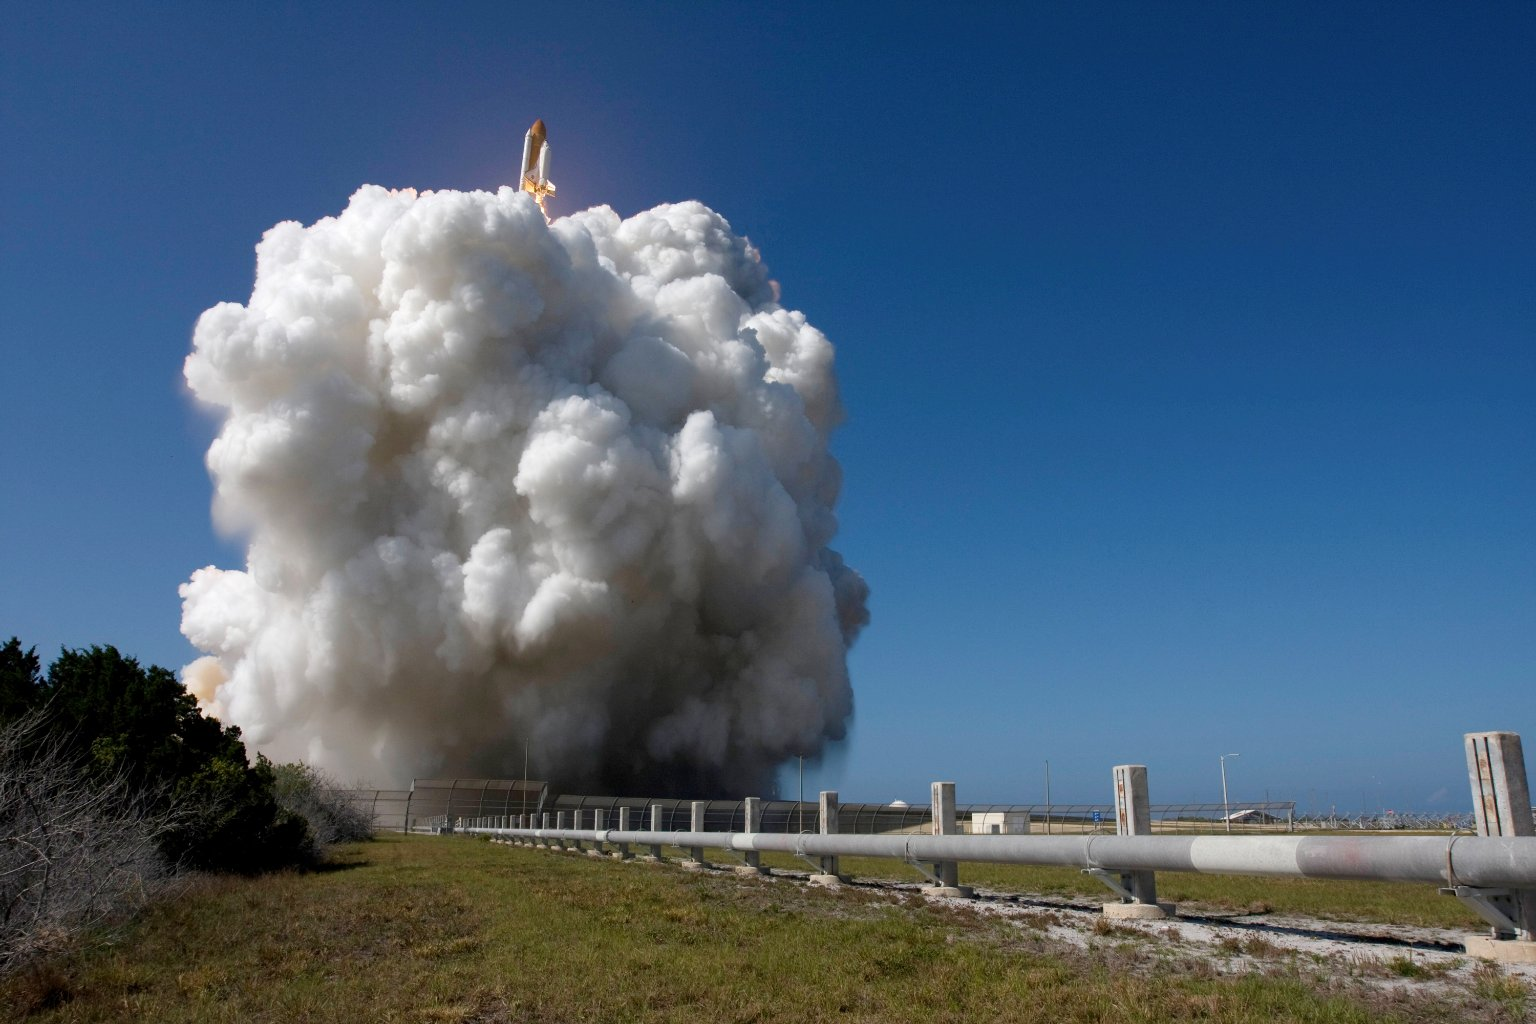 STS-124 launch